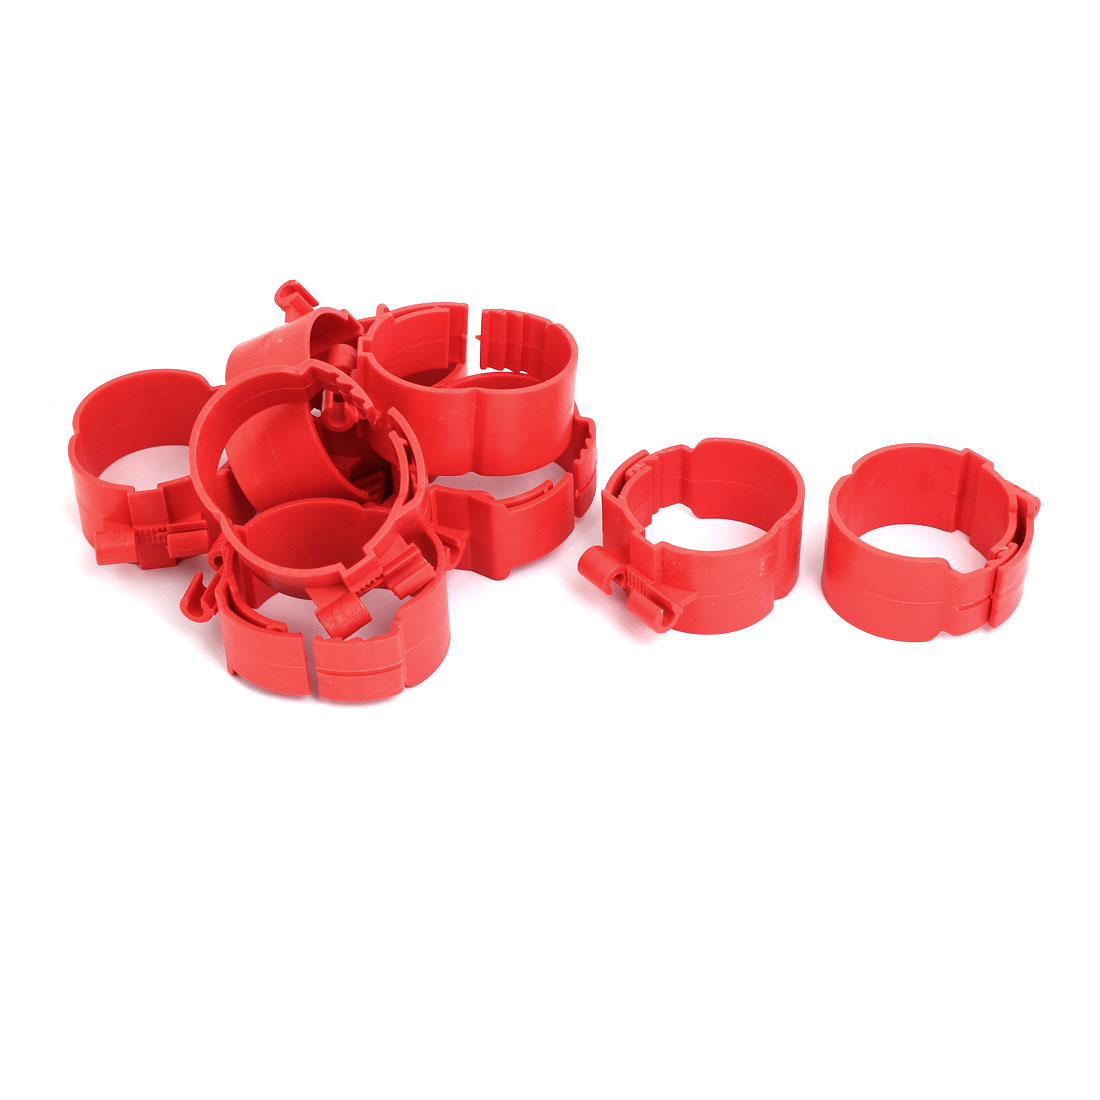 60mm Dia 38mm Width Central Air Conditioner Pipe Clip Clamp Red 9pcs